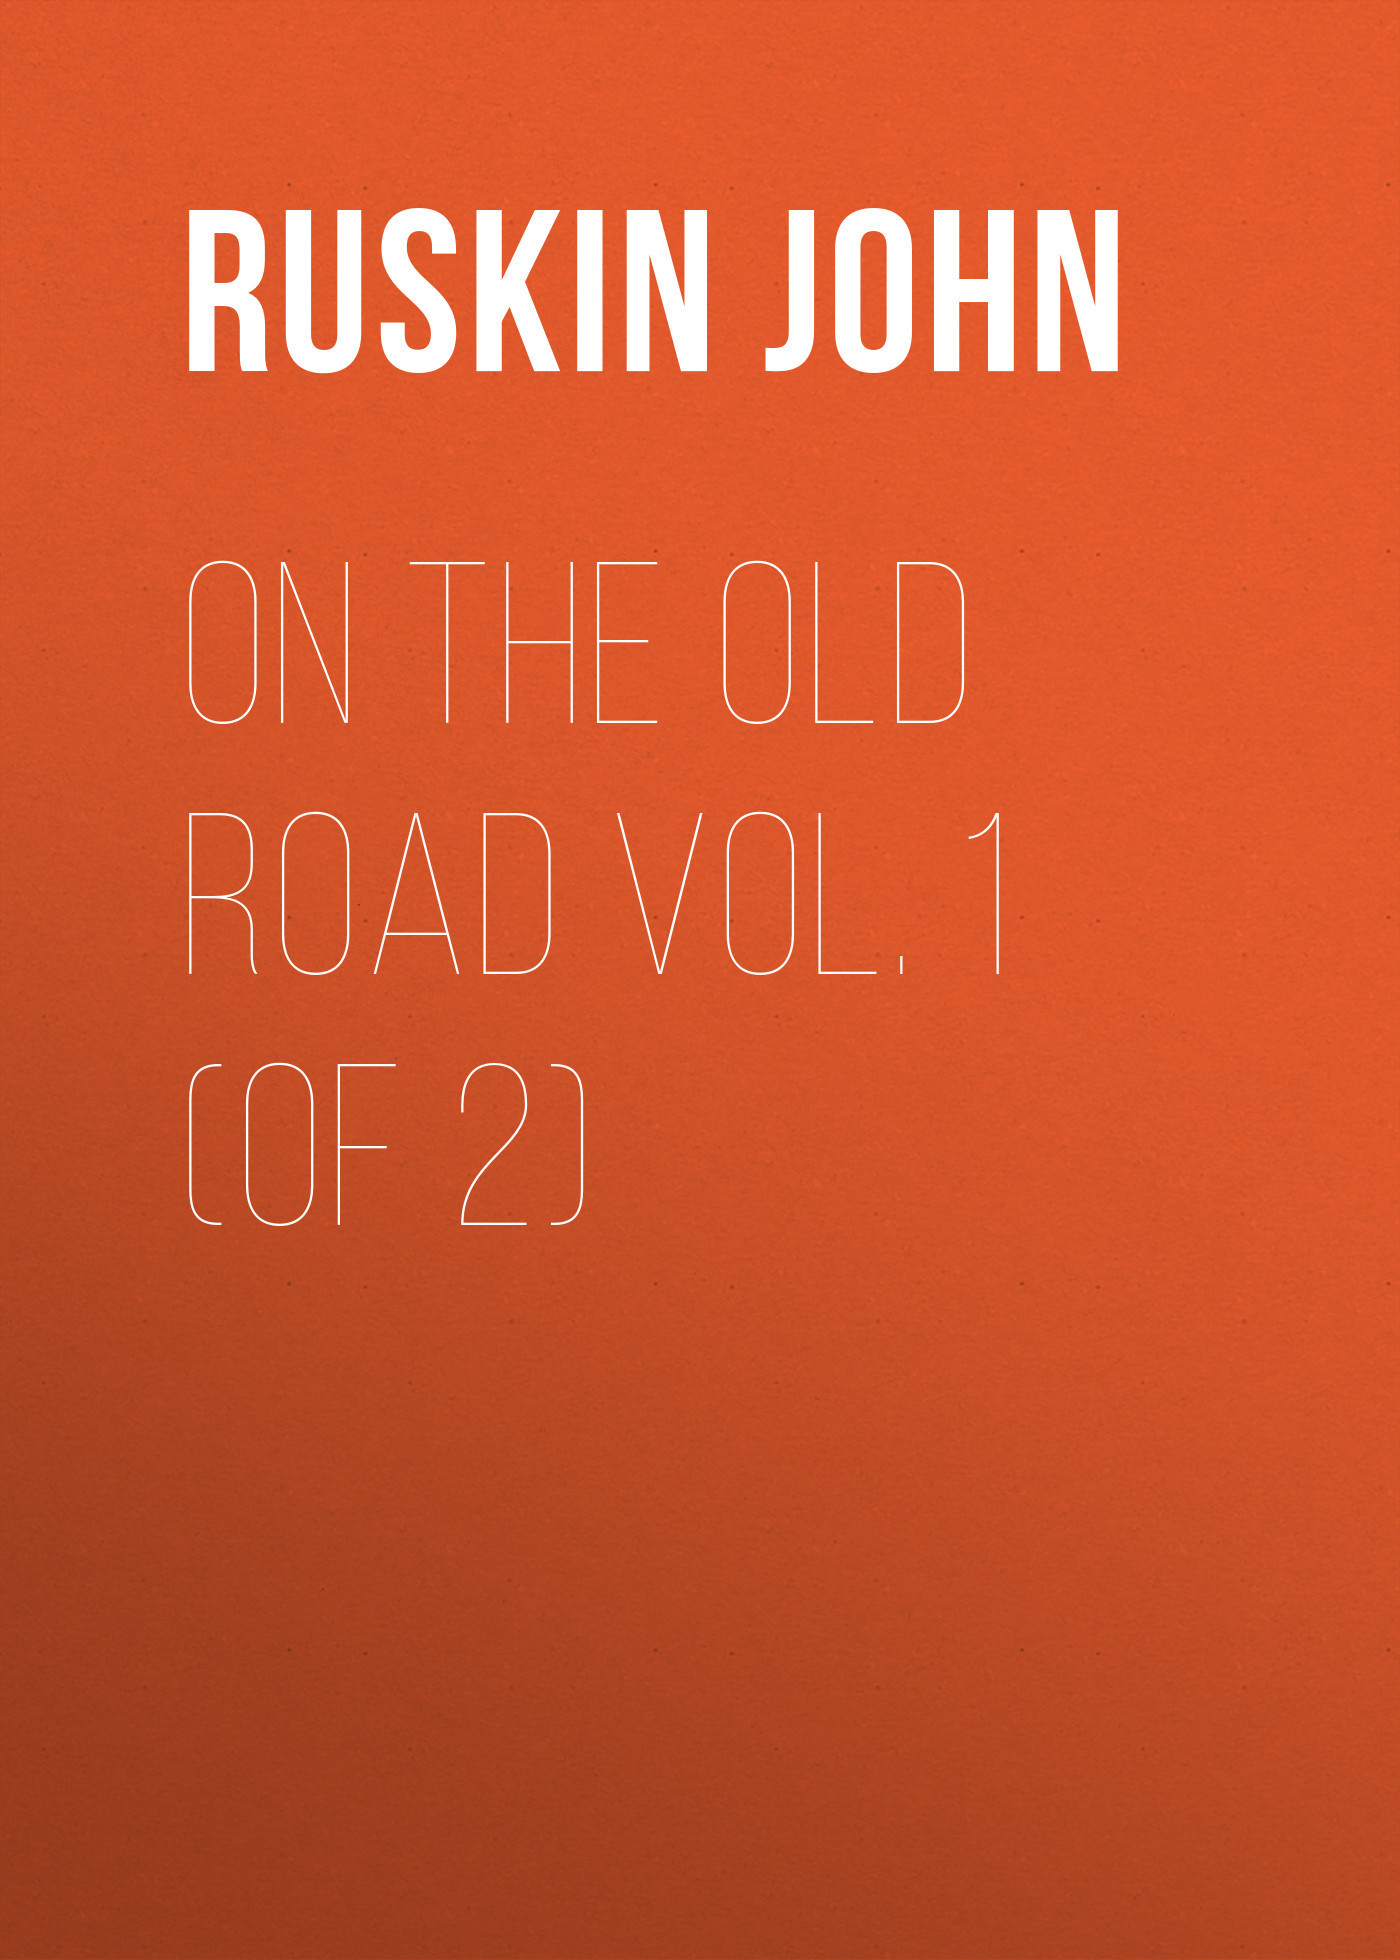 On the Old Road  Vol. 1  (of 2)